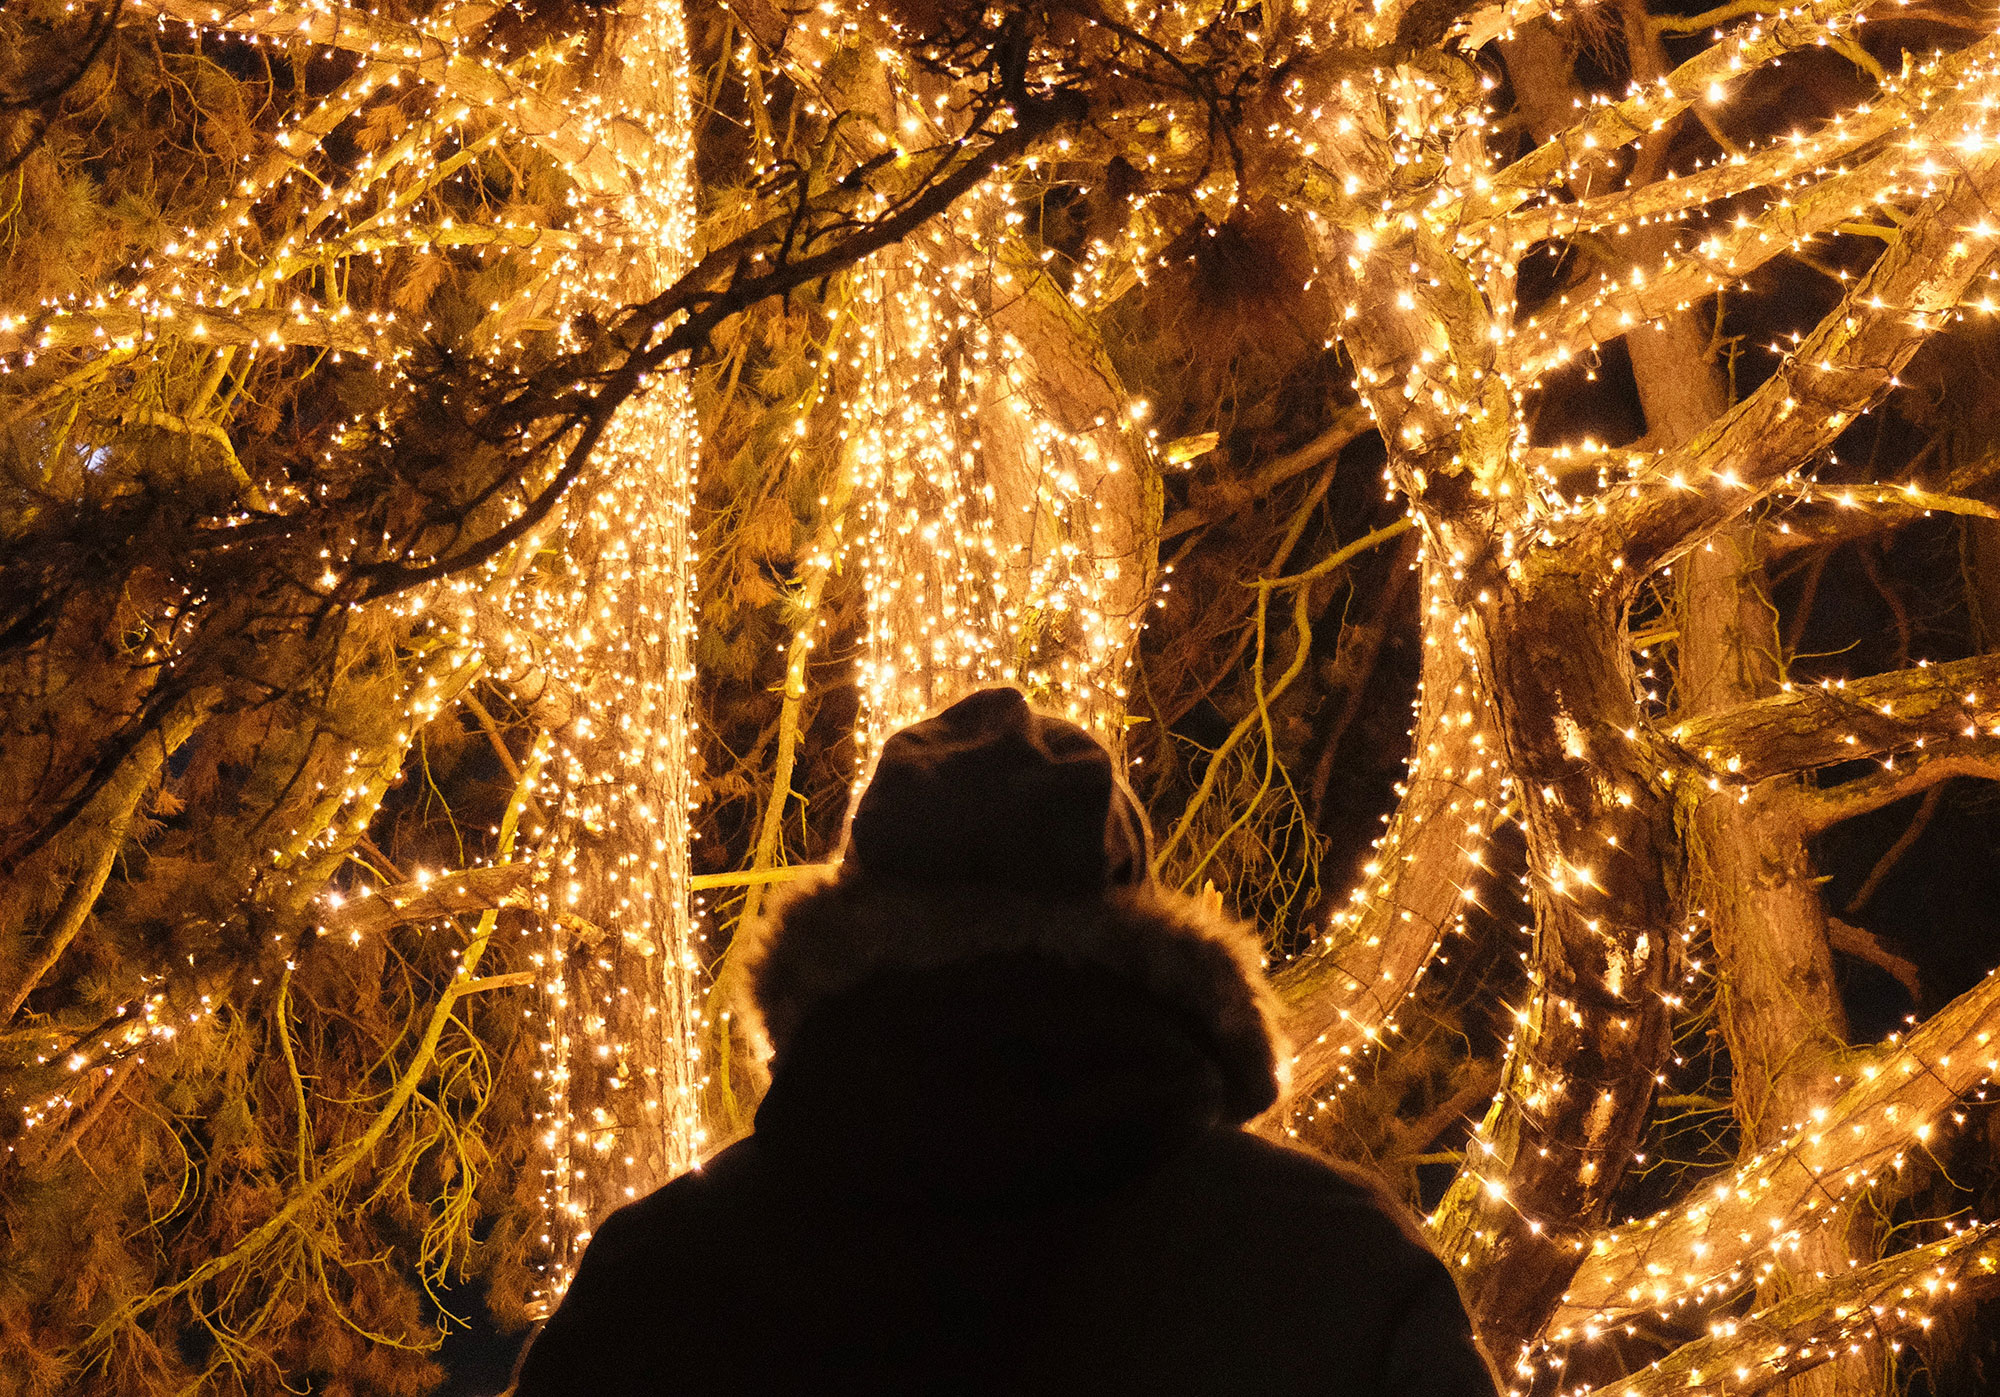 Trees with bright string lighting